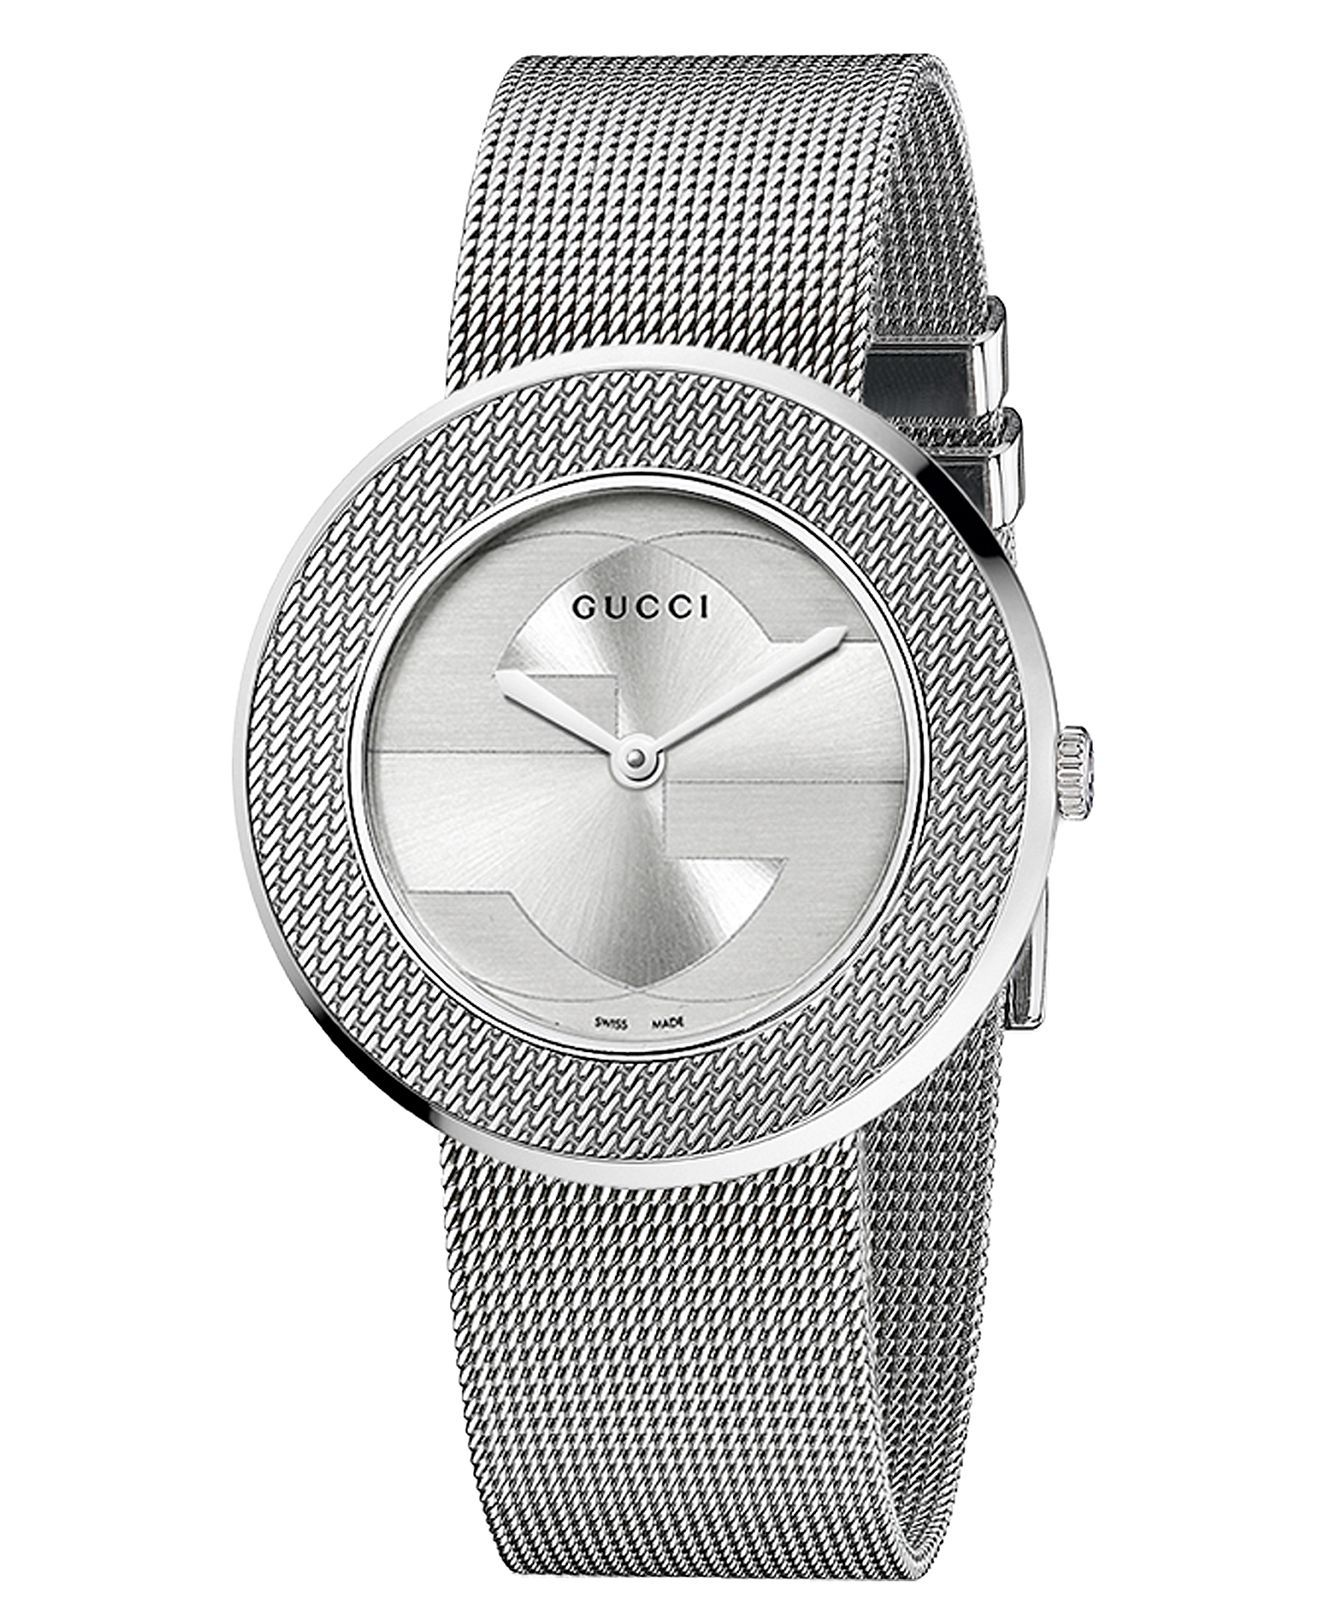 2e02113d1a7 Gucci Watch Strap and Bezel Kit